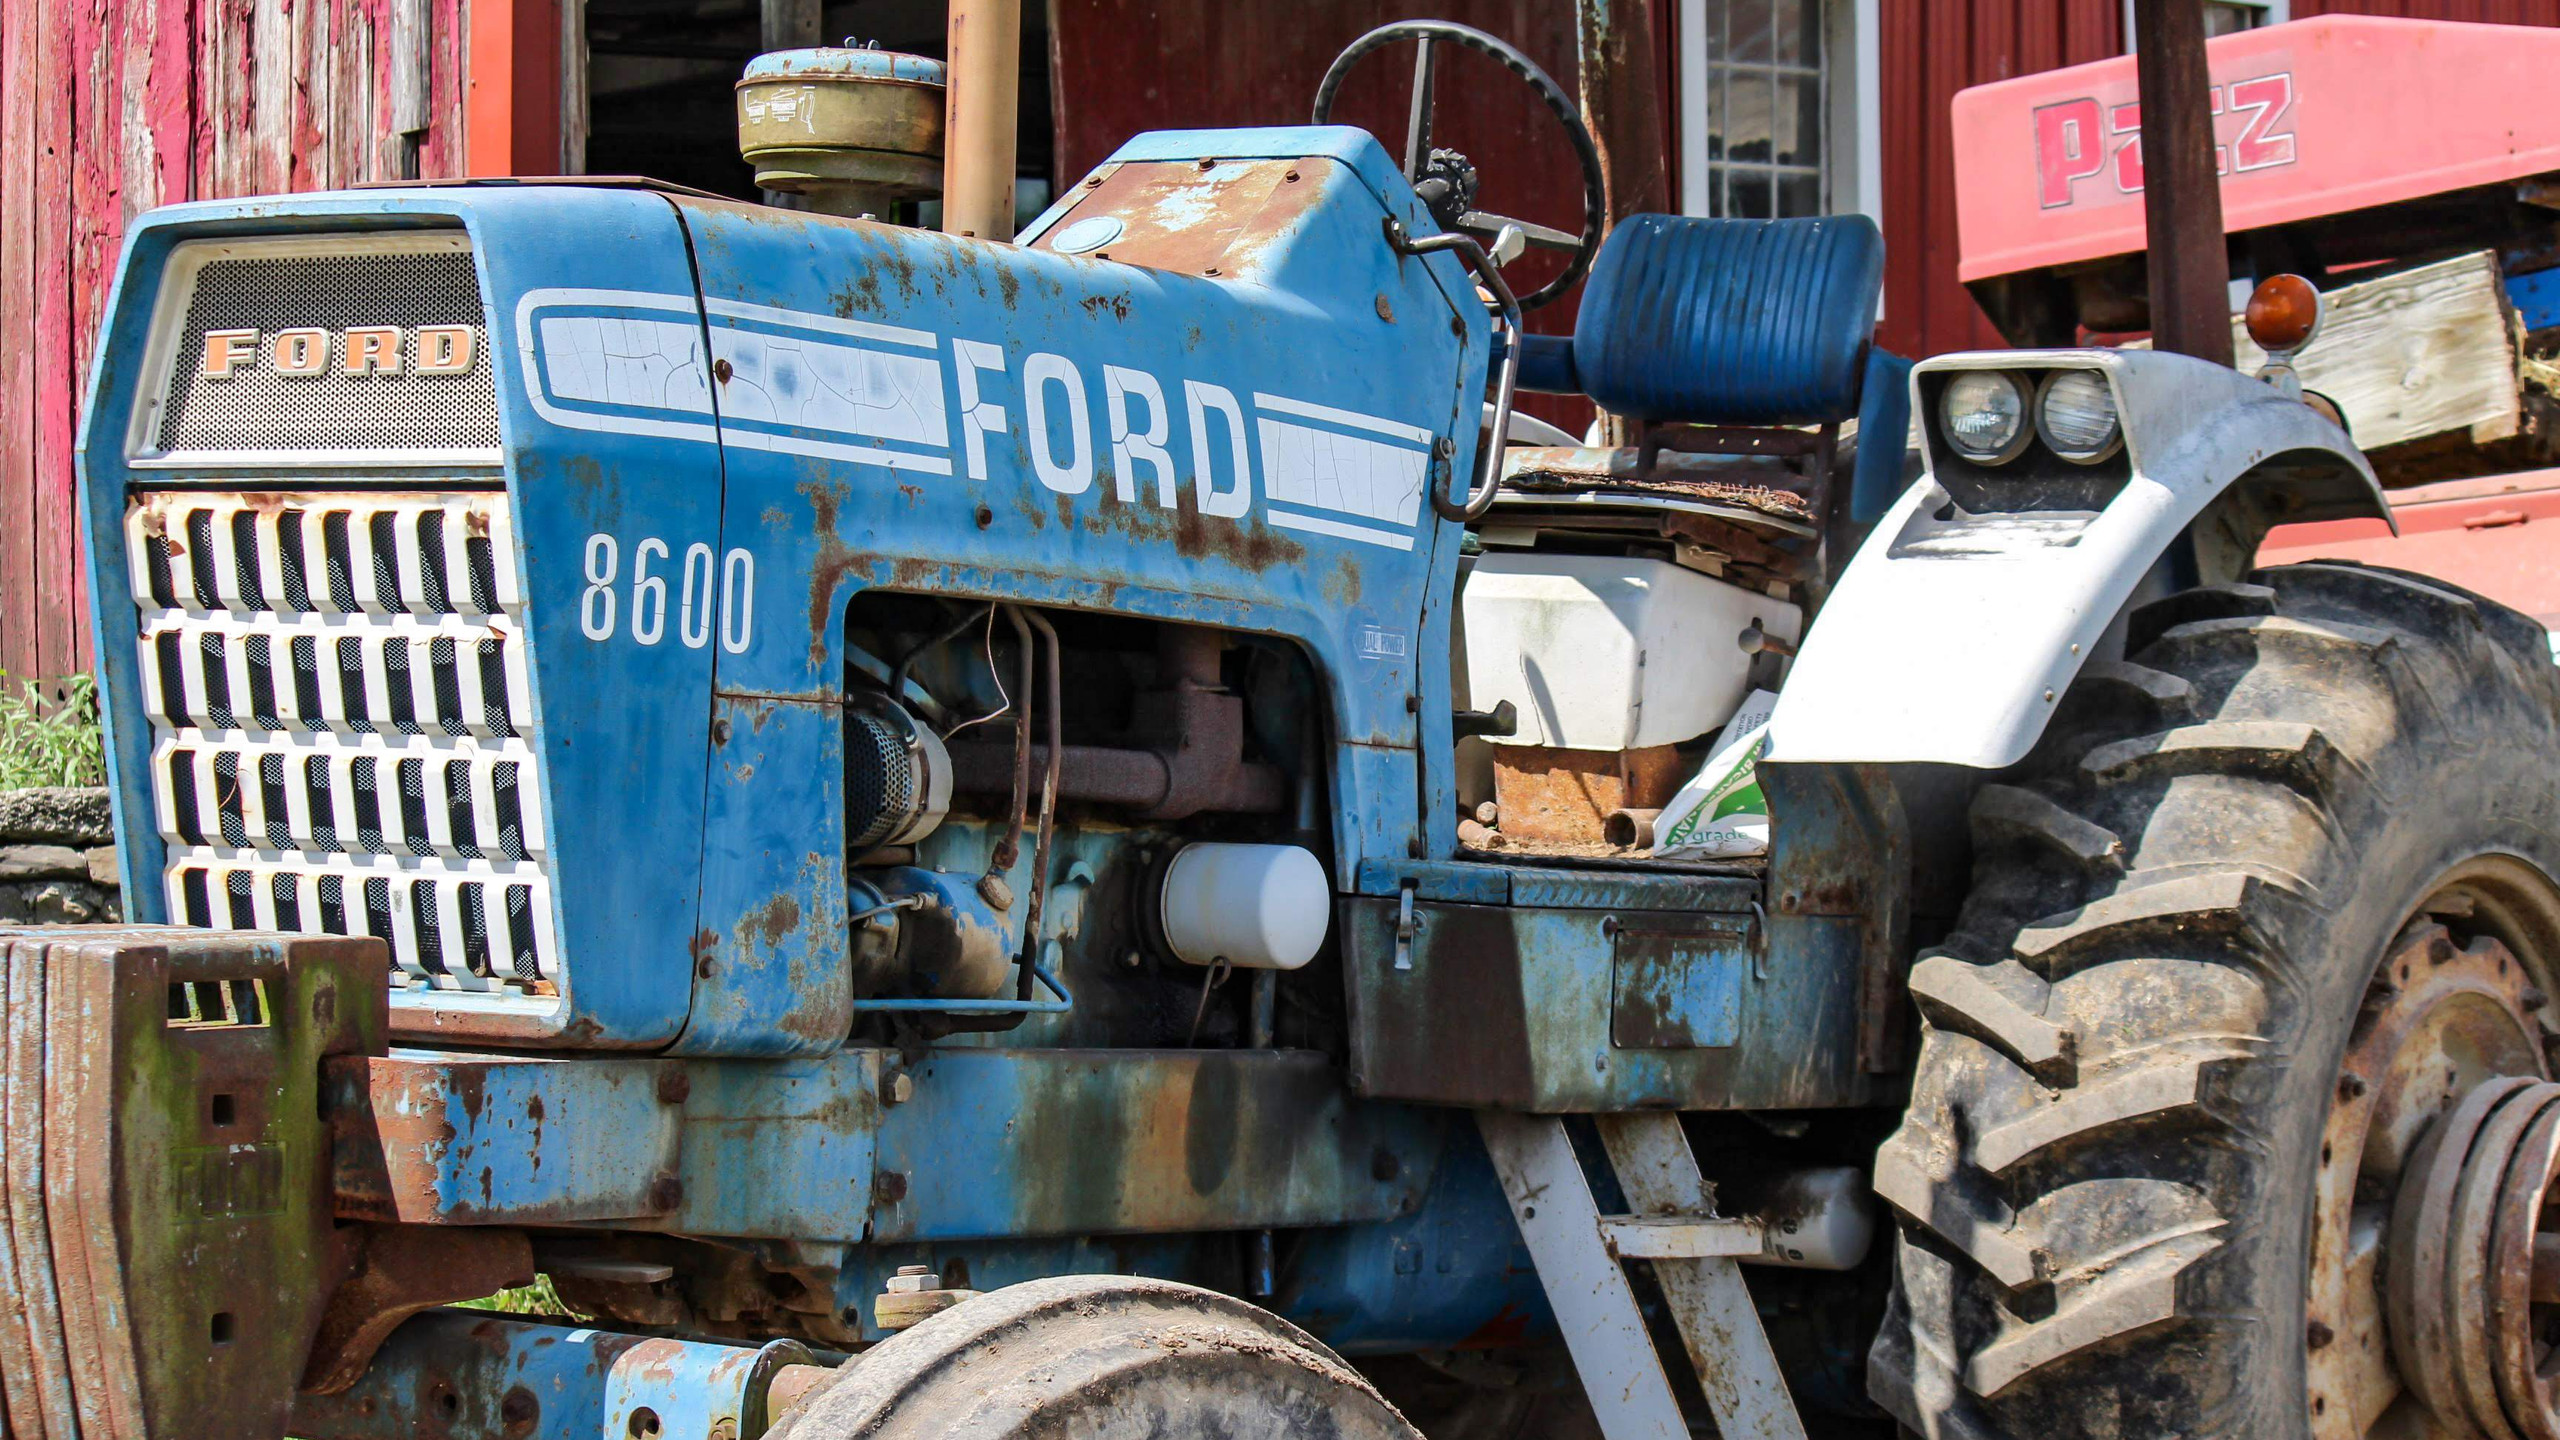 Founded with Ford (Late Summer, 2018